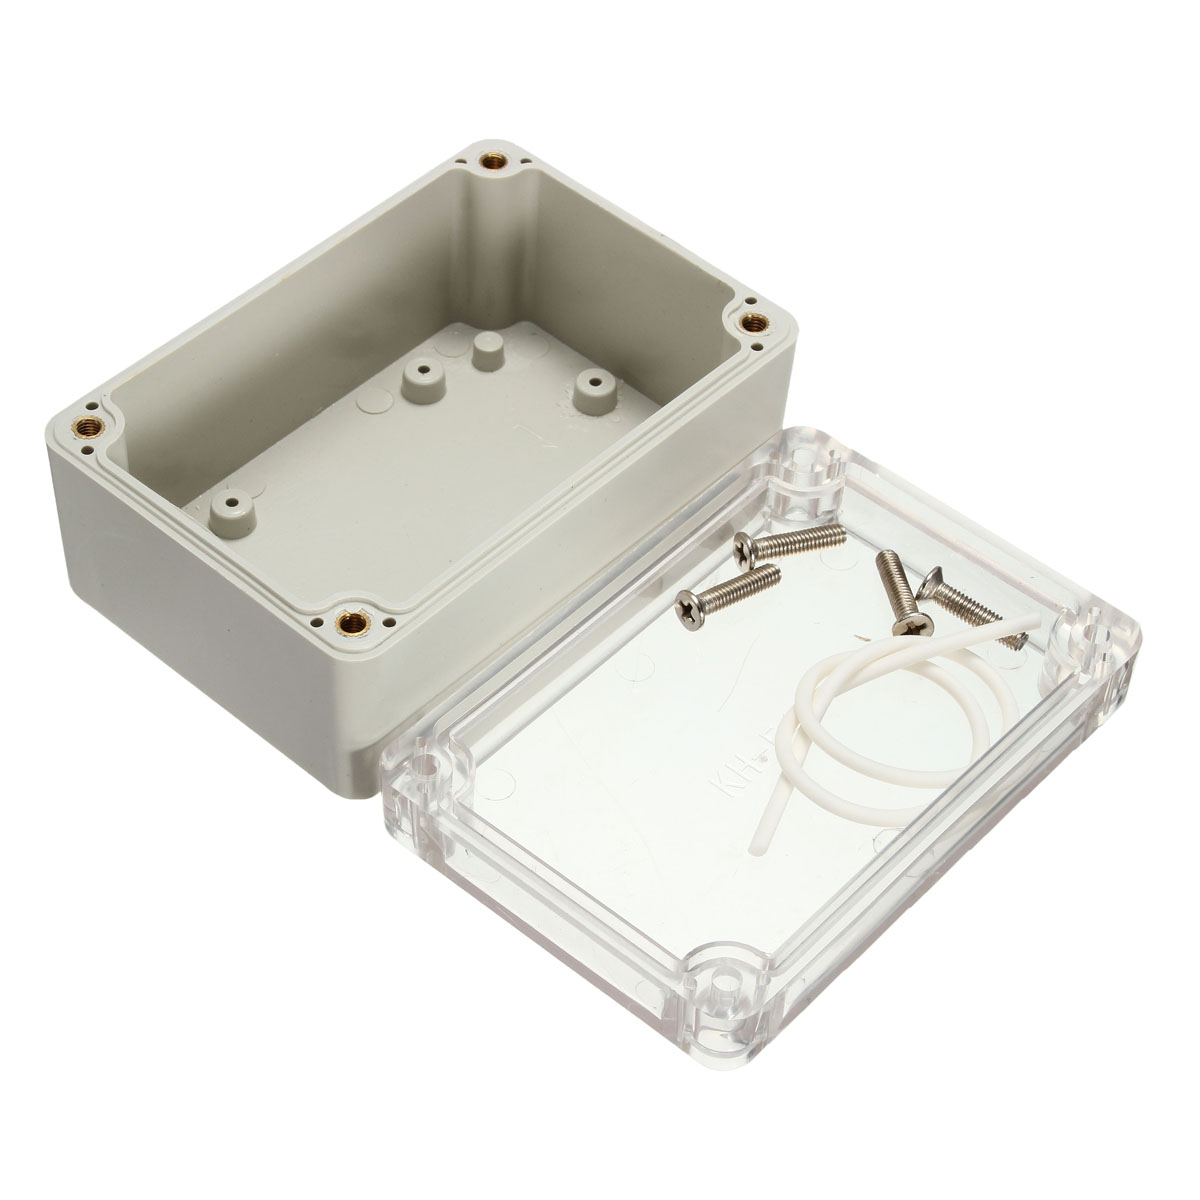 100x68x50mm Plastic Waterproof Electrical Junction Case Transparent Cover Enclosure Case Waterproof Plastic Electronic Box New white waterproof plastic enclosure box electric power junction case 158mmx90mmx46mm with 6pcs screws